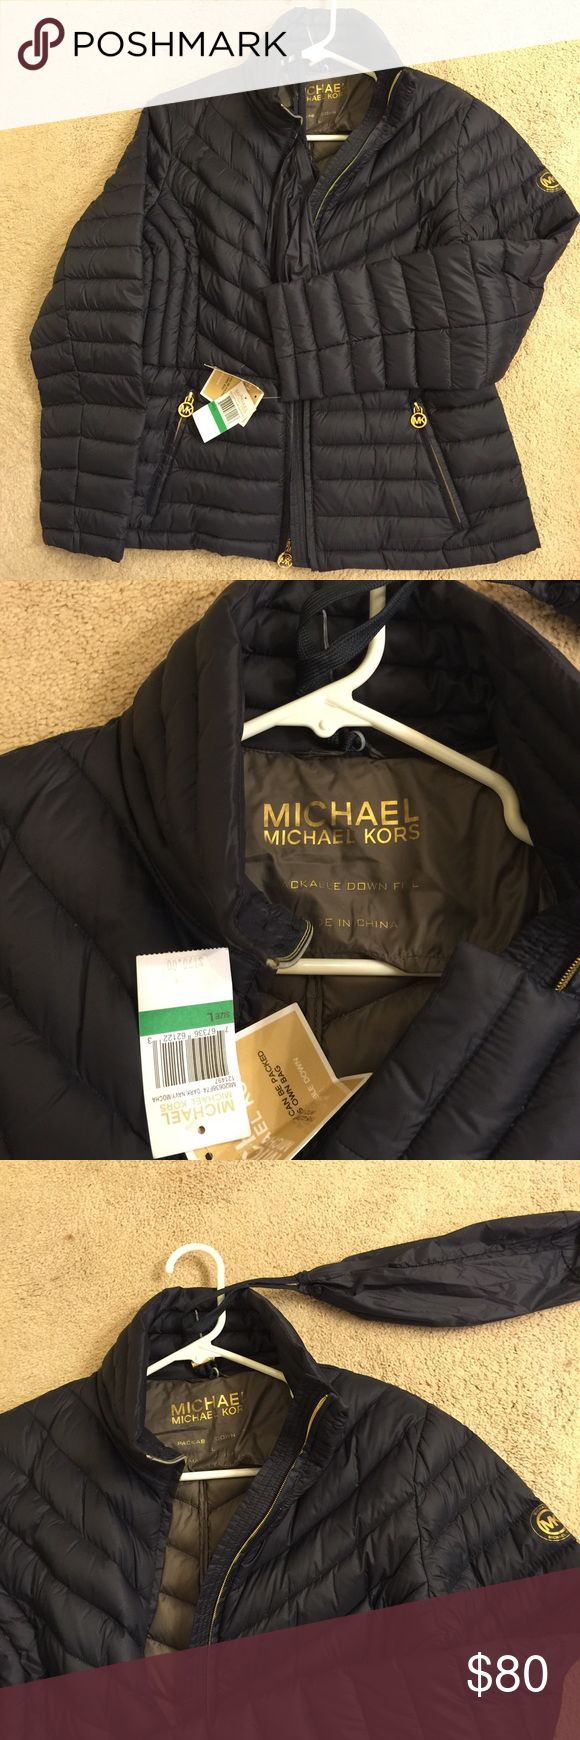 Michael Kors Jacket Michael Kors Downfill Jacket, size Large, new with tags, comes with storage bag (see attached in pic) Michael Kors Jackets & Coats Puffers